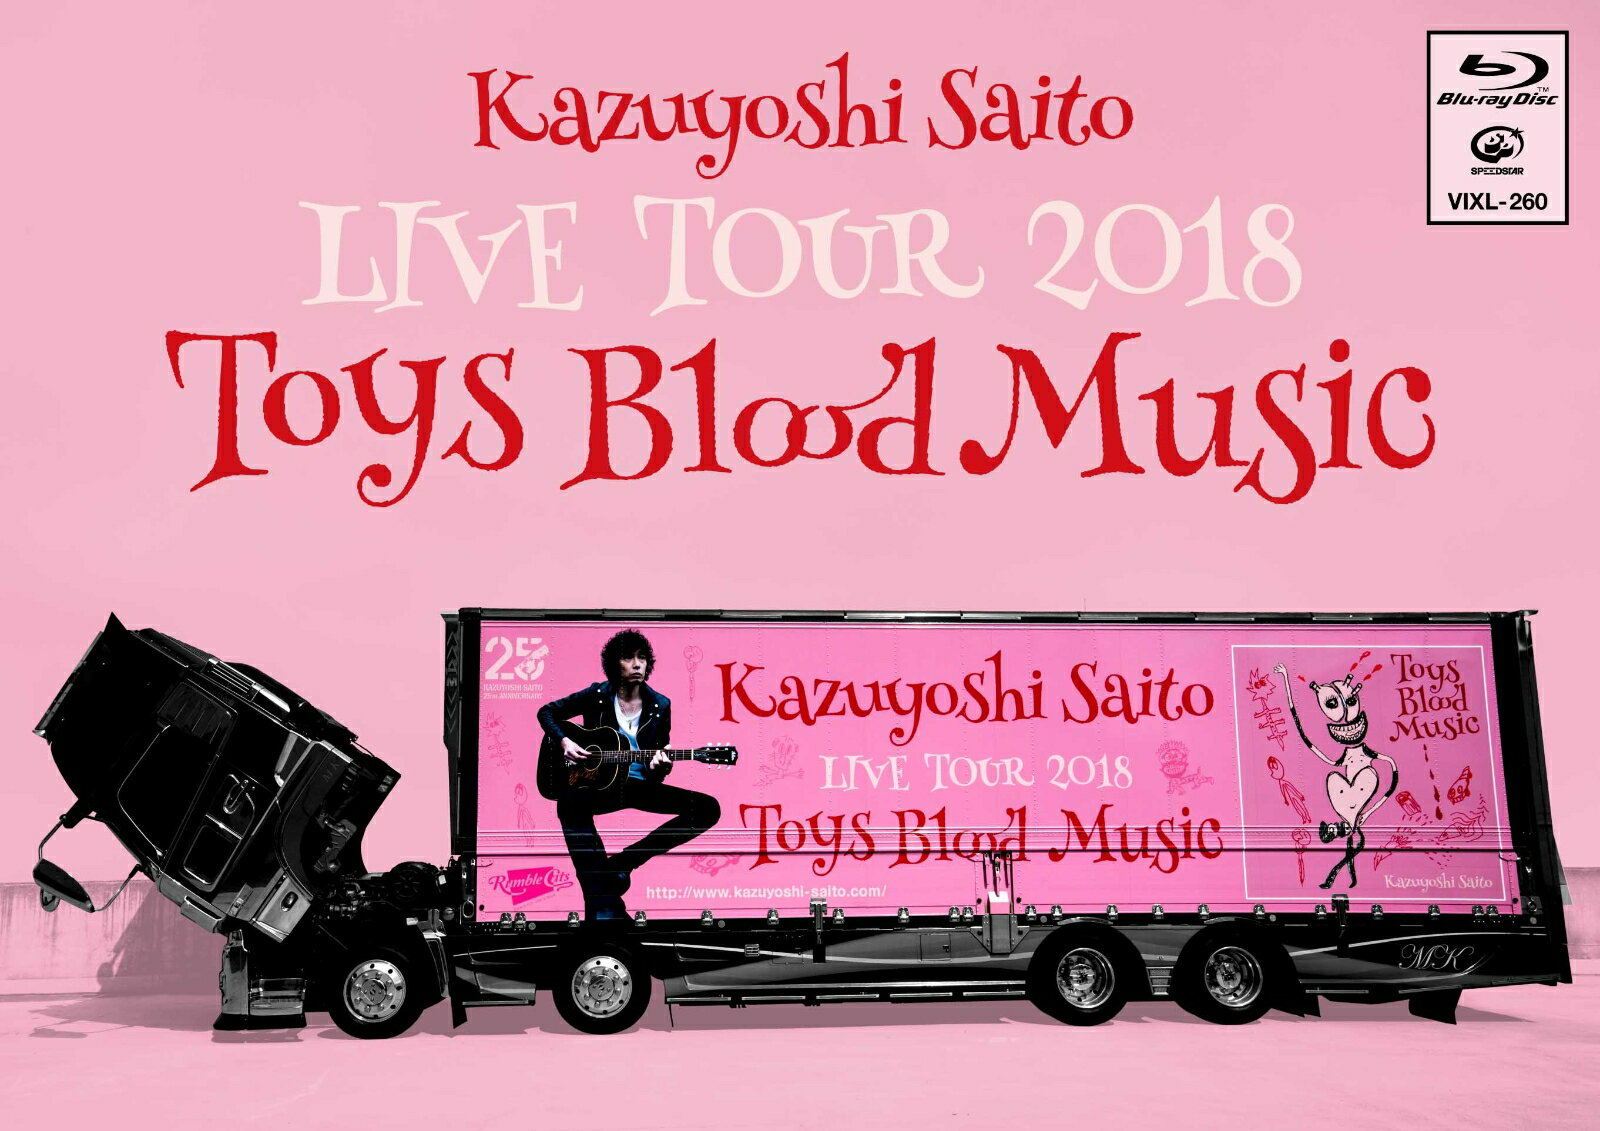 KAZUYOSHI SAITO LIVE TOUR 2018 Toys Blood Music Live at 山梨コラニー文化ホール 2018.6.2【Blu-ray】